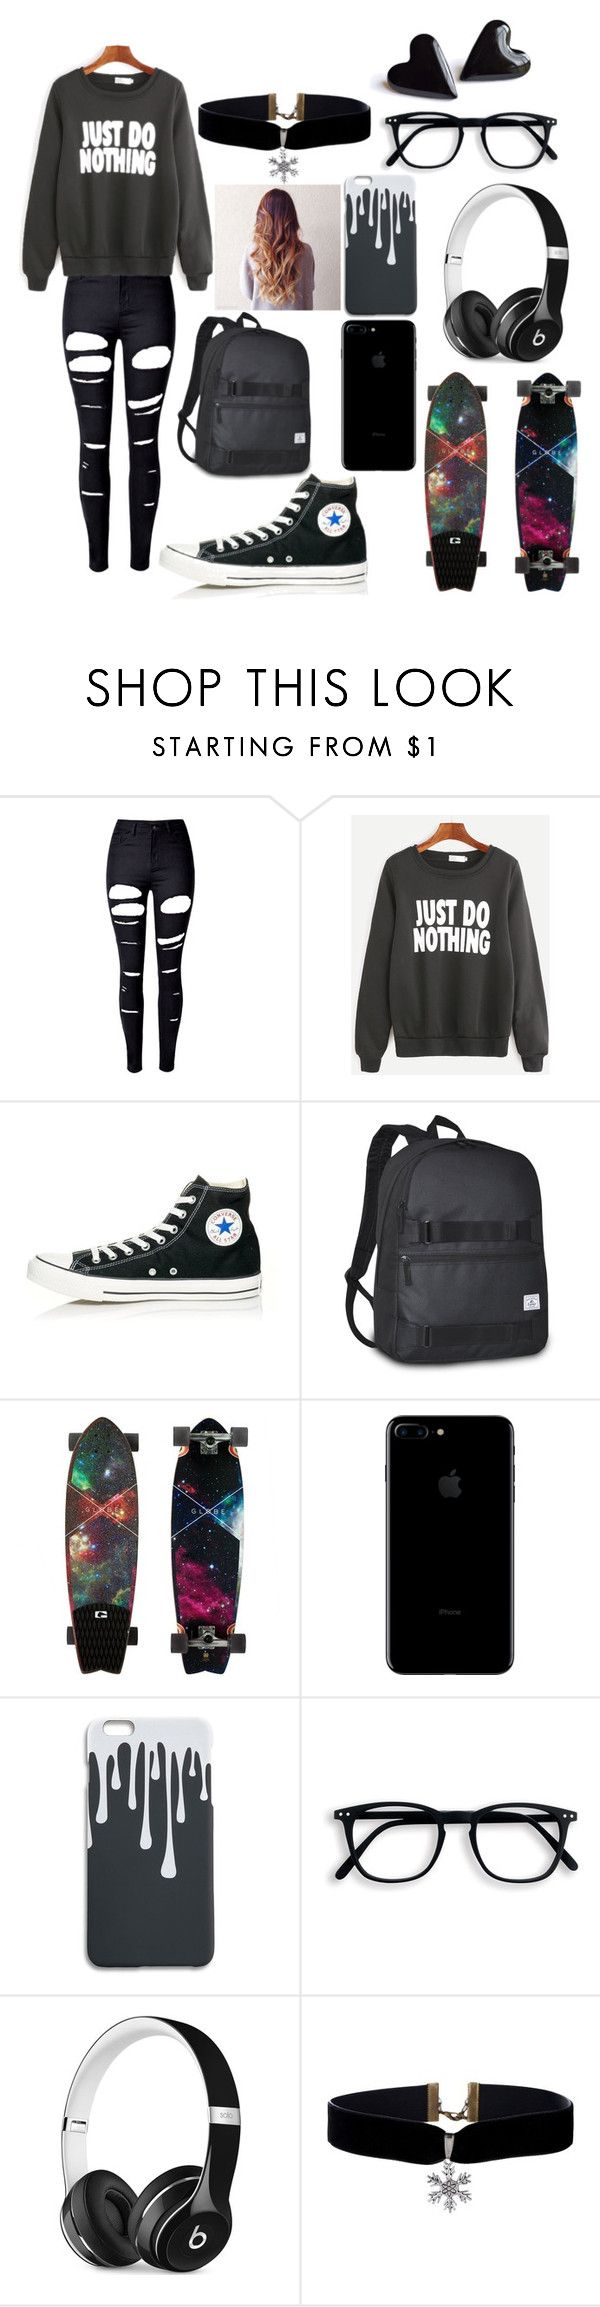 """Skater Girl Look"" by nadia-y03 ❤ liked on Polyvore featuring WithChic, Converse, Everest and Beats by Dr. Dre"